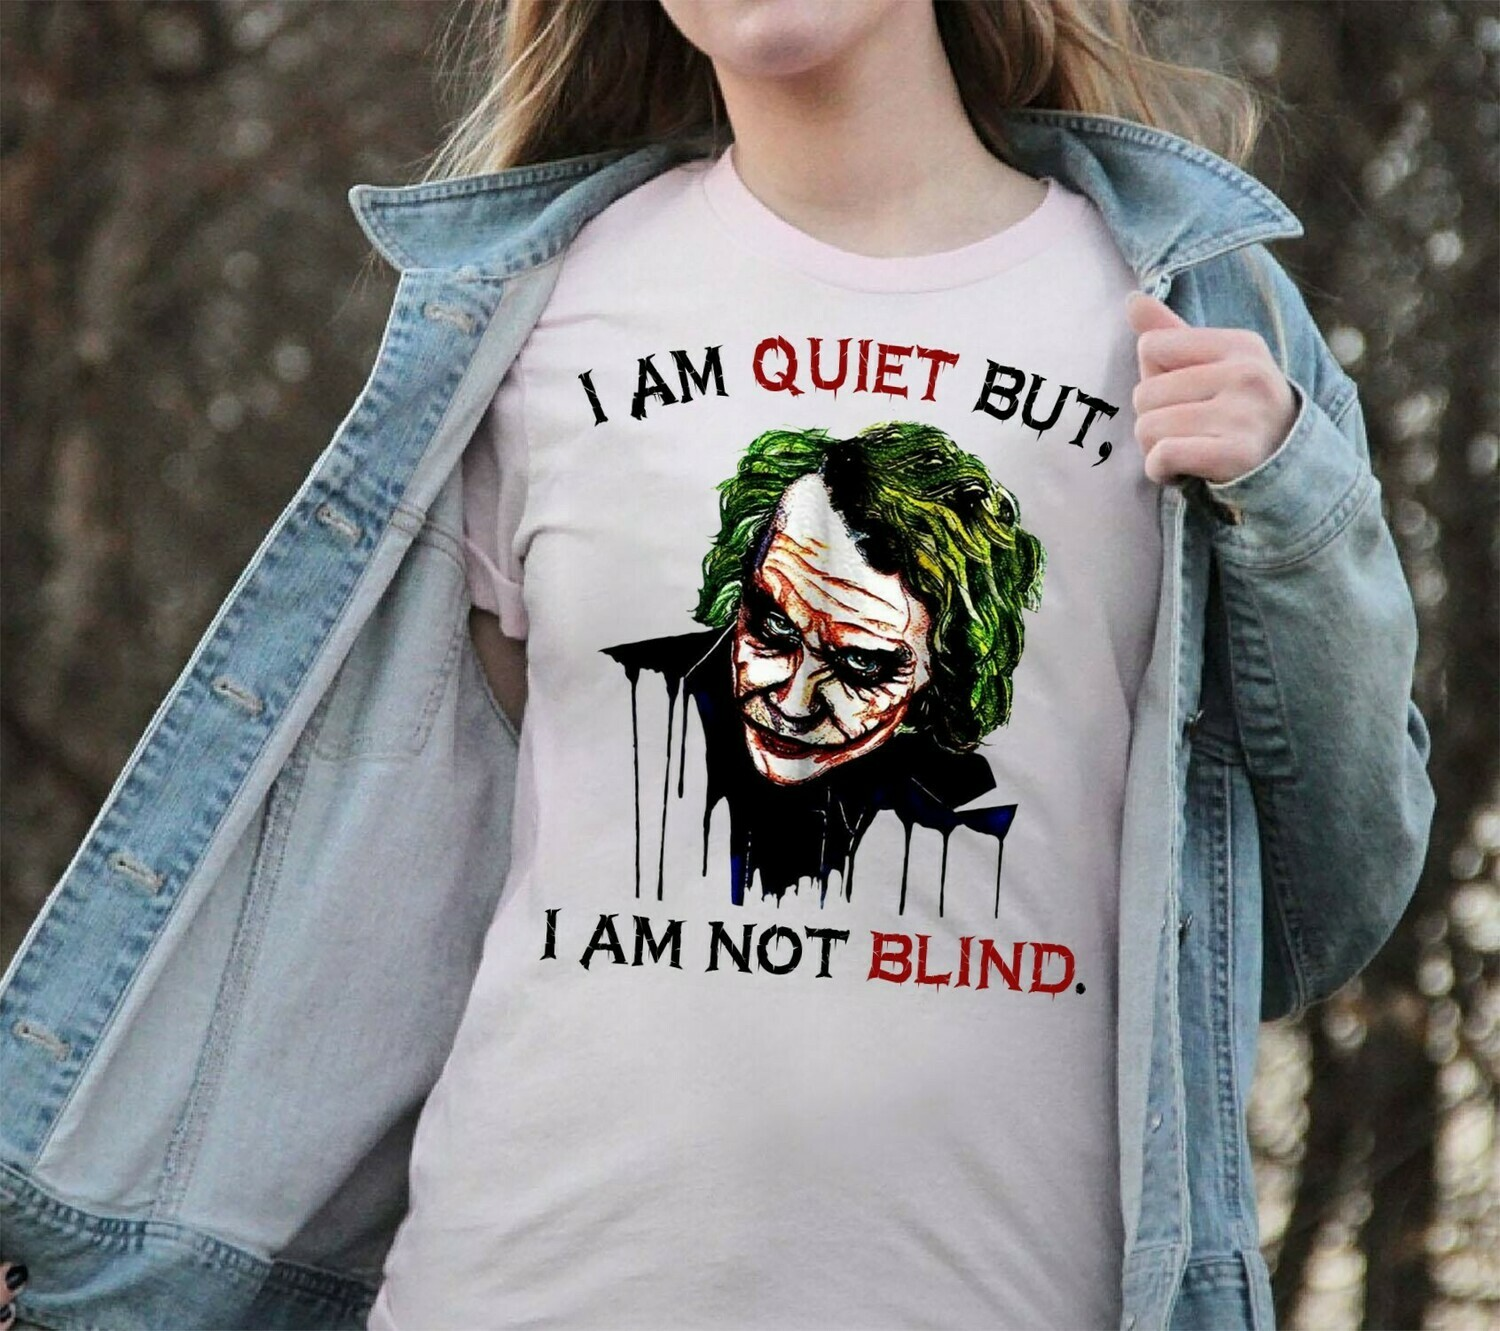 Heath Ledger Joker I Am Quiet But, I Am Not Blind Gifts For Fans Here Comes Your Favorite Villain Halloween Horror Movie Unisex T-Shirt Long Sleeve Sweatshirt Hoodie Jolly Family Gifts